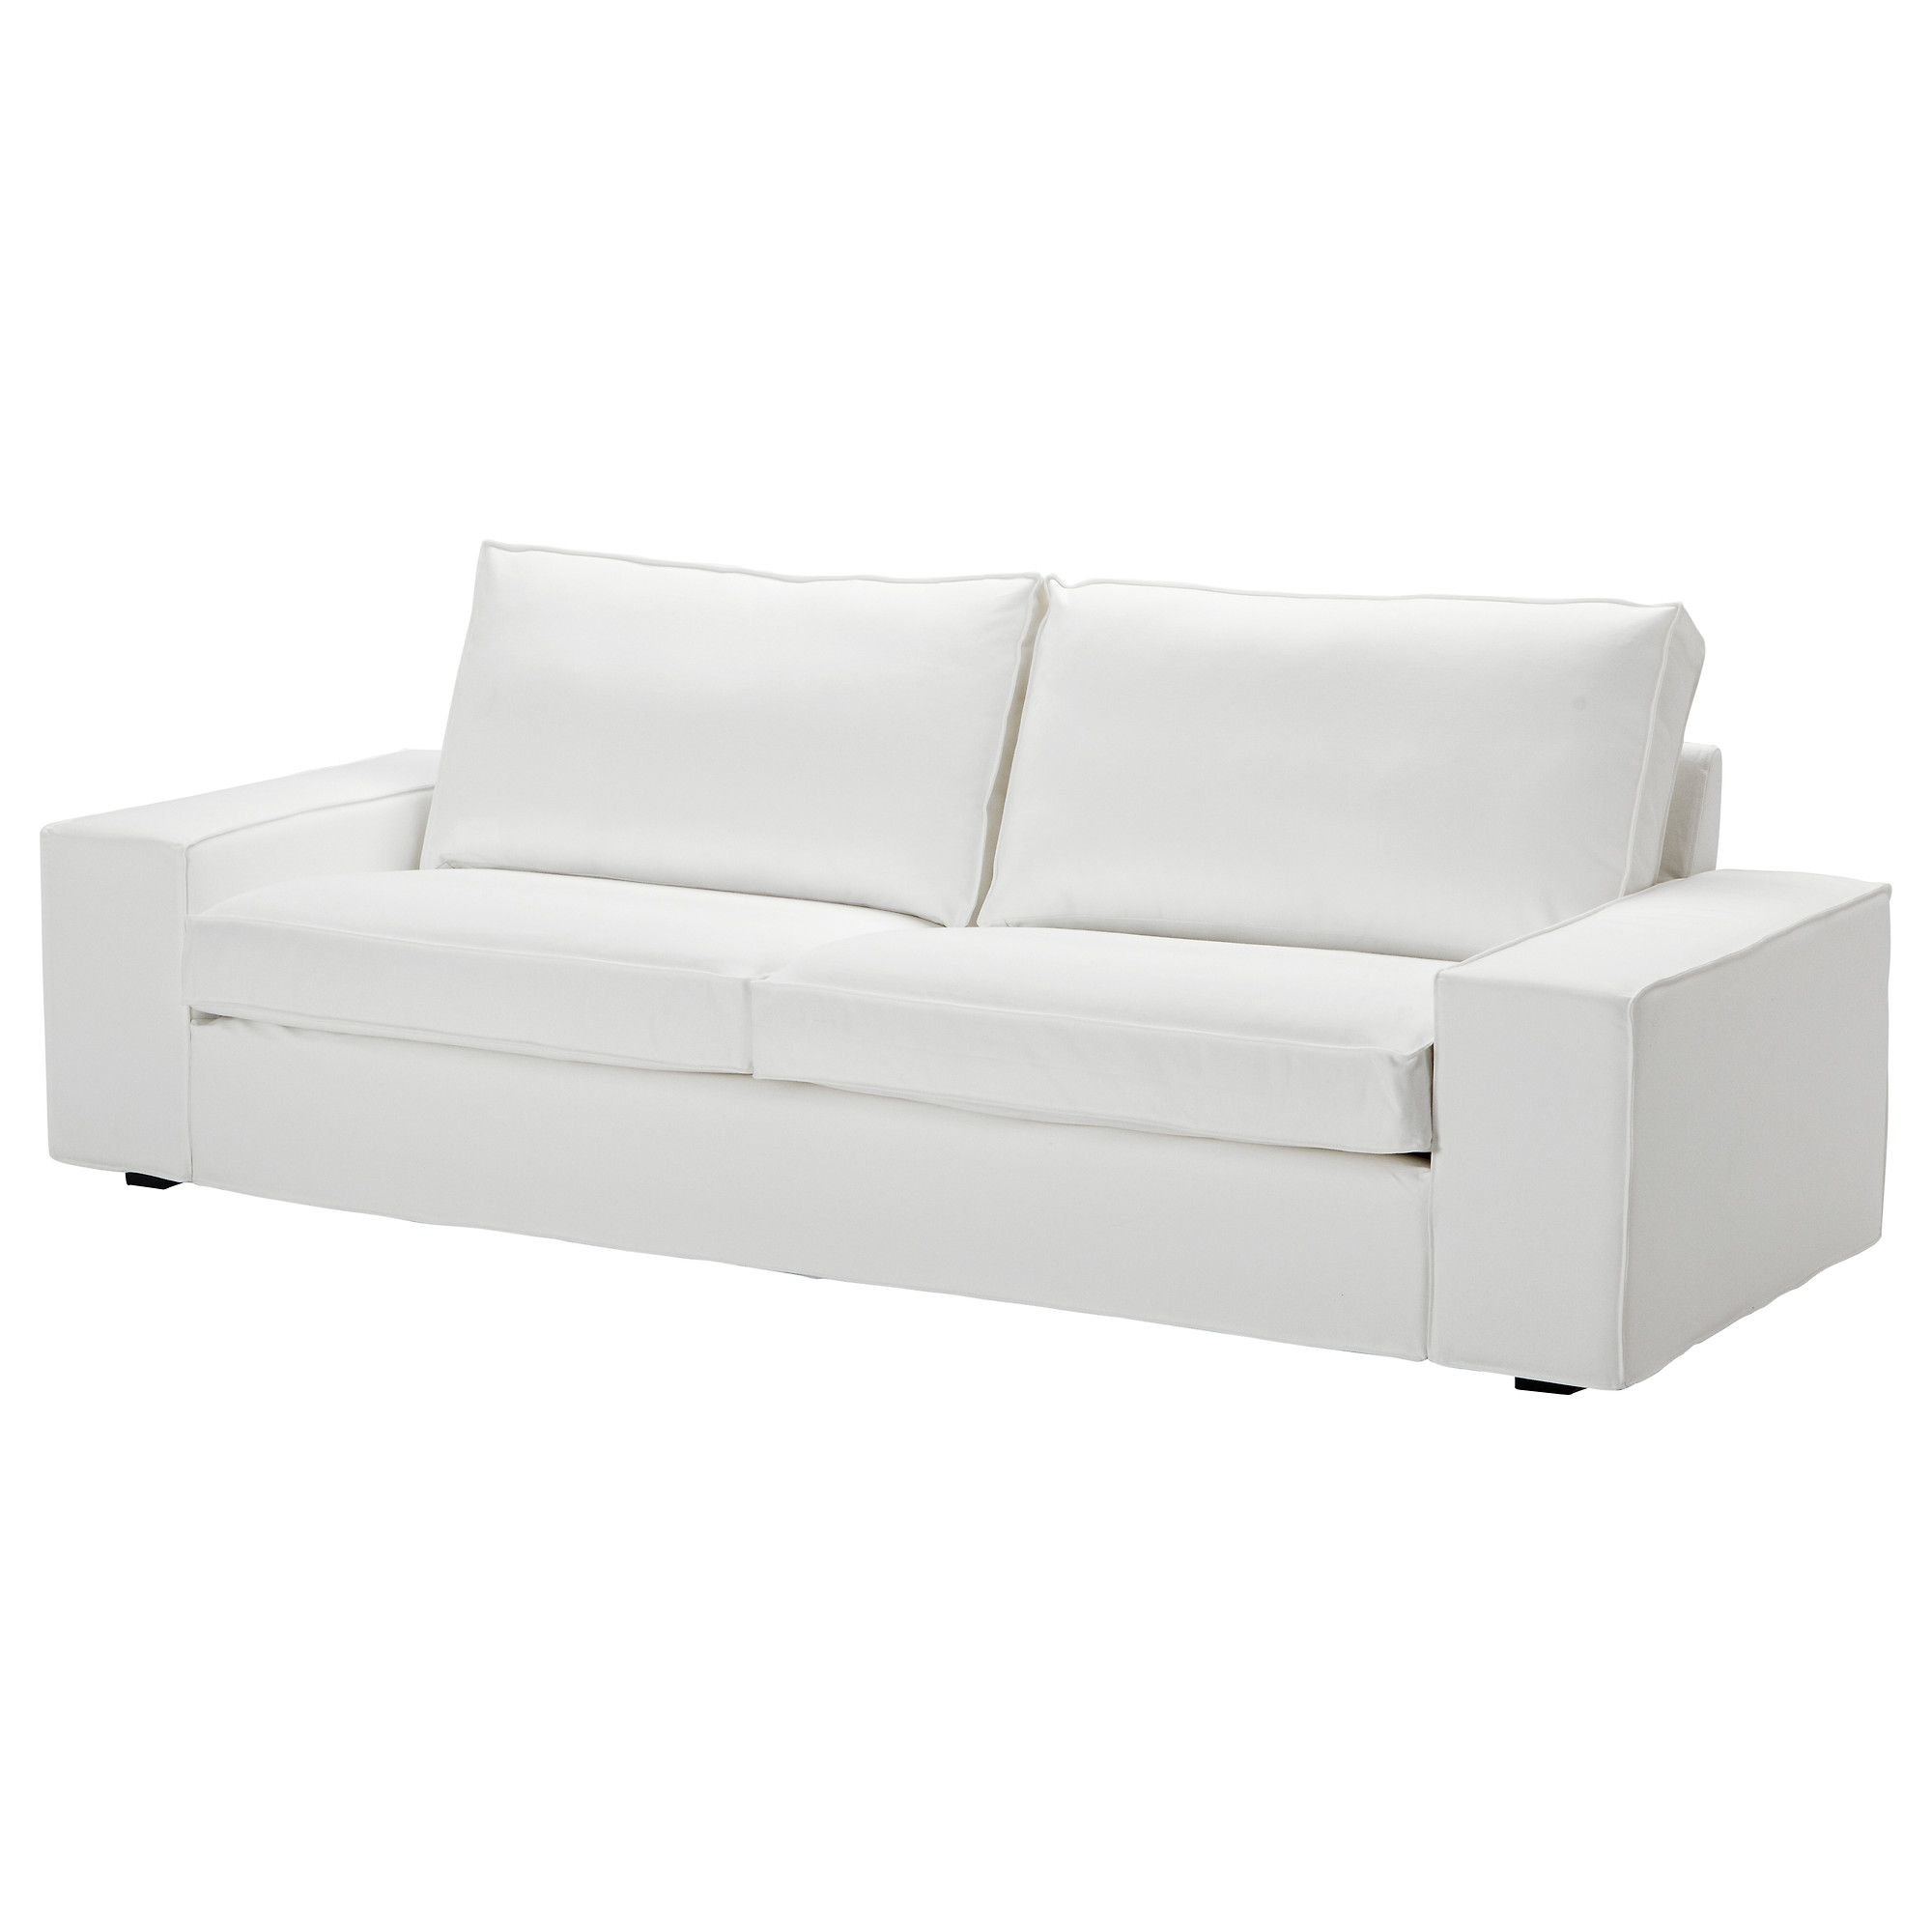 Merveilleux KIVIK Sofa   Blekinge White   IKEA White Canvas Slipcover Sofa Offer (price  Includes Slipcover). Not As Glamorous But Just An Option If Budget Needed  To Be ...